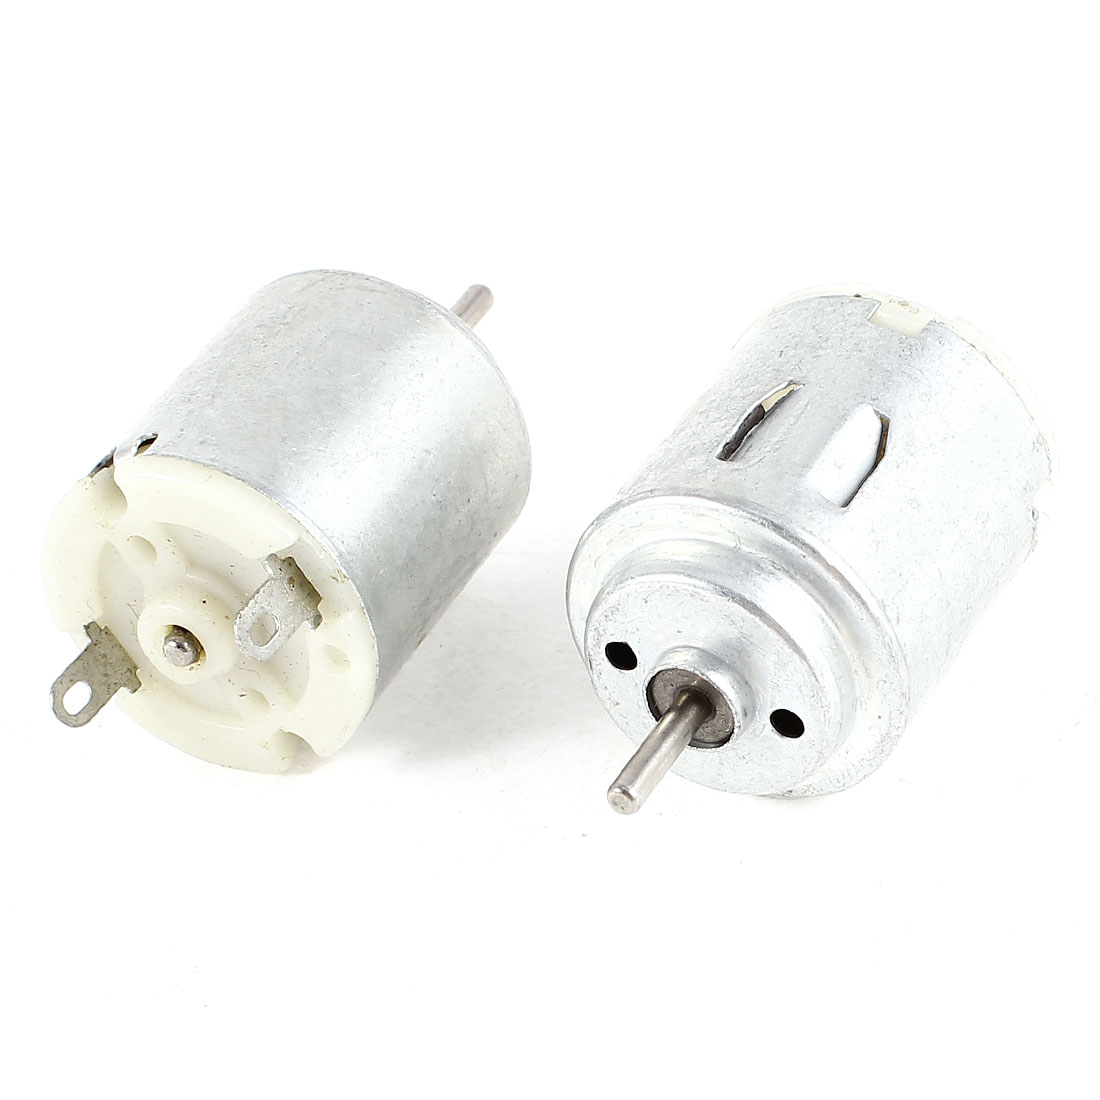 2 Pcs DC 1.5-6V 7500RPM Electric Mini Motor 23x20mm for Toys DIY